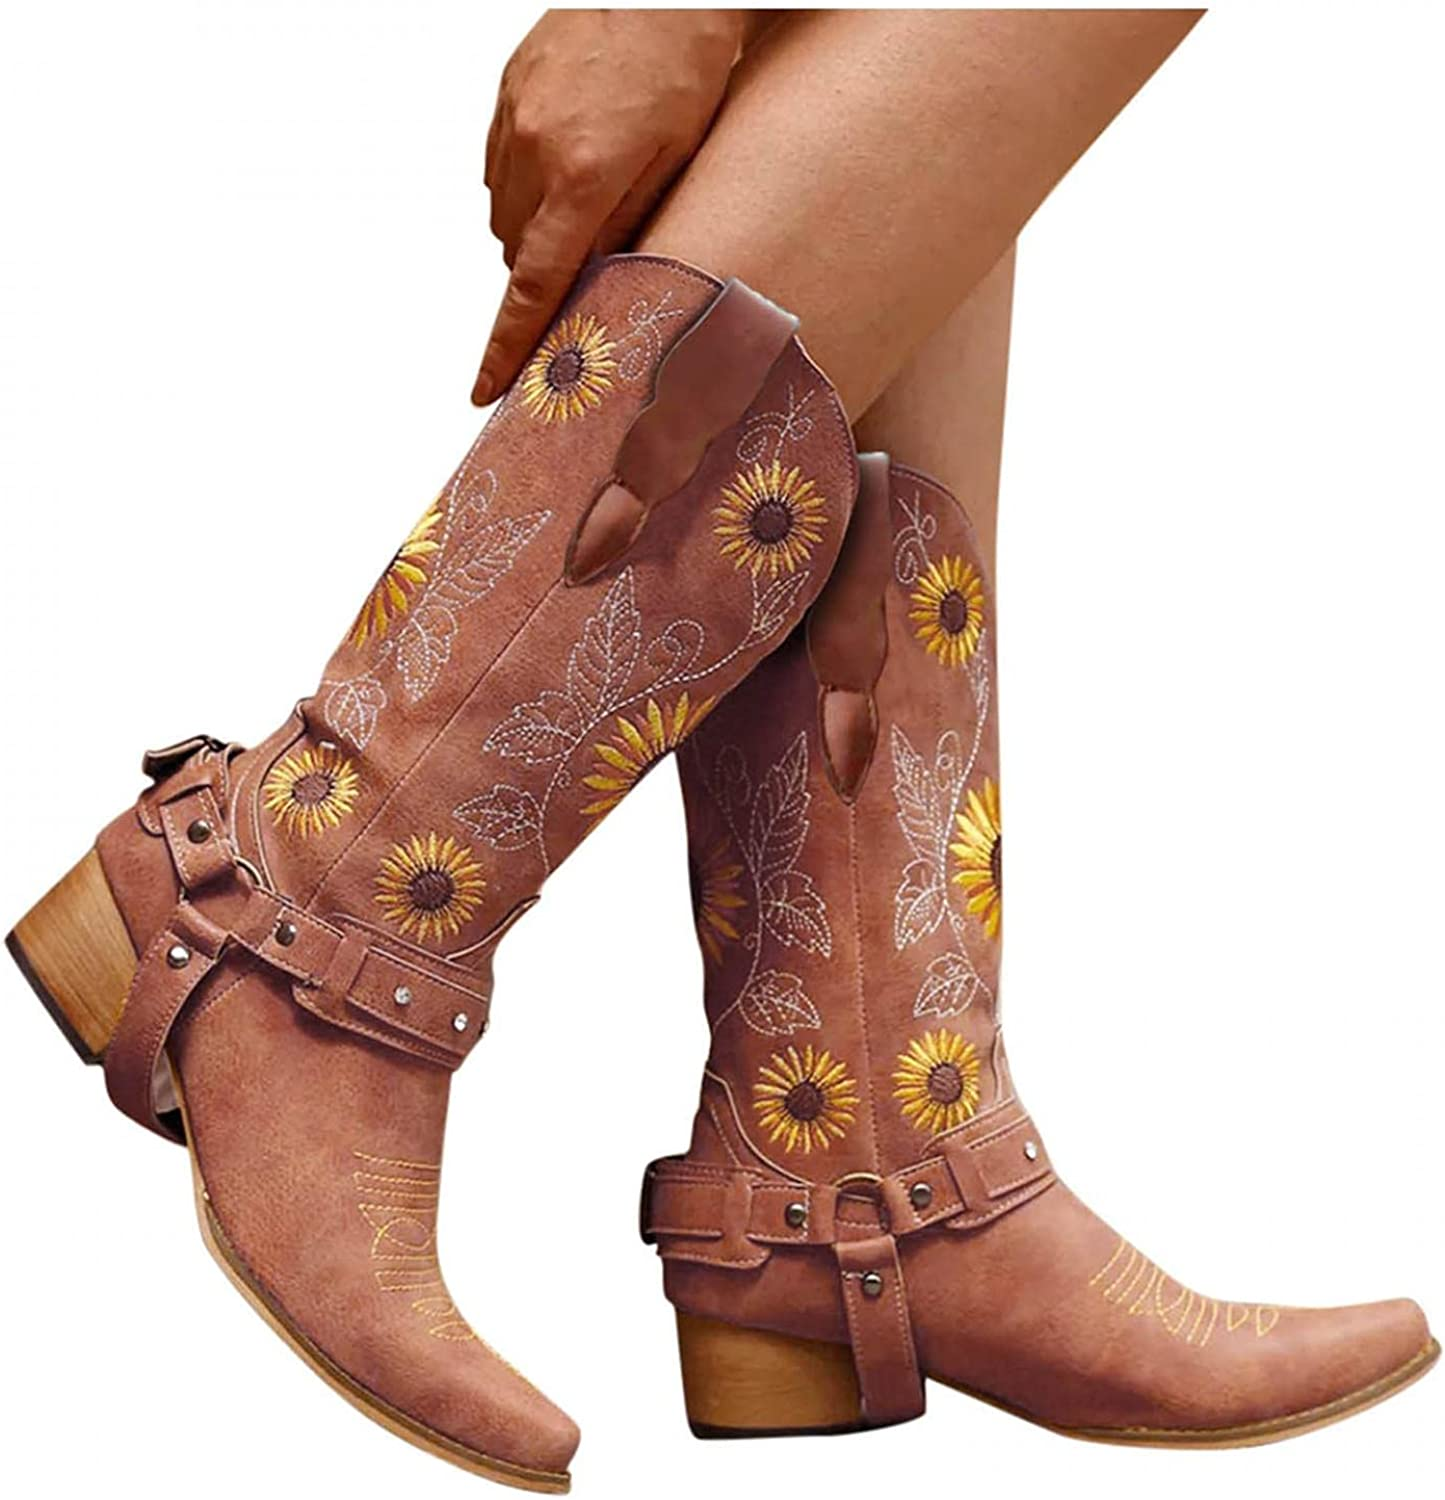 Cowgirl Inexpensive Boots for Women Sunflowers Squared Embroidery Low Max 79% OFF Toe He